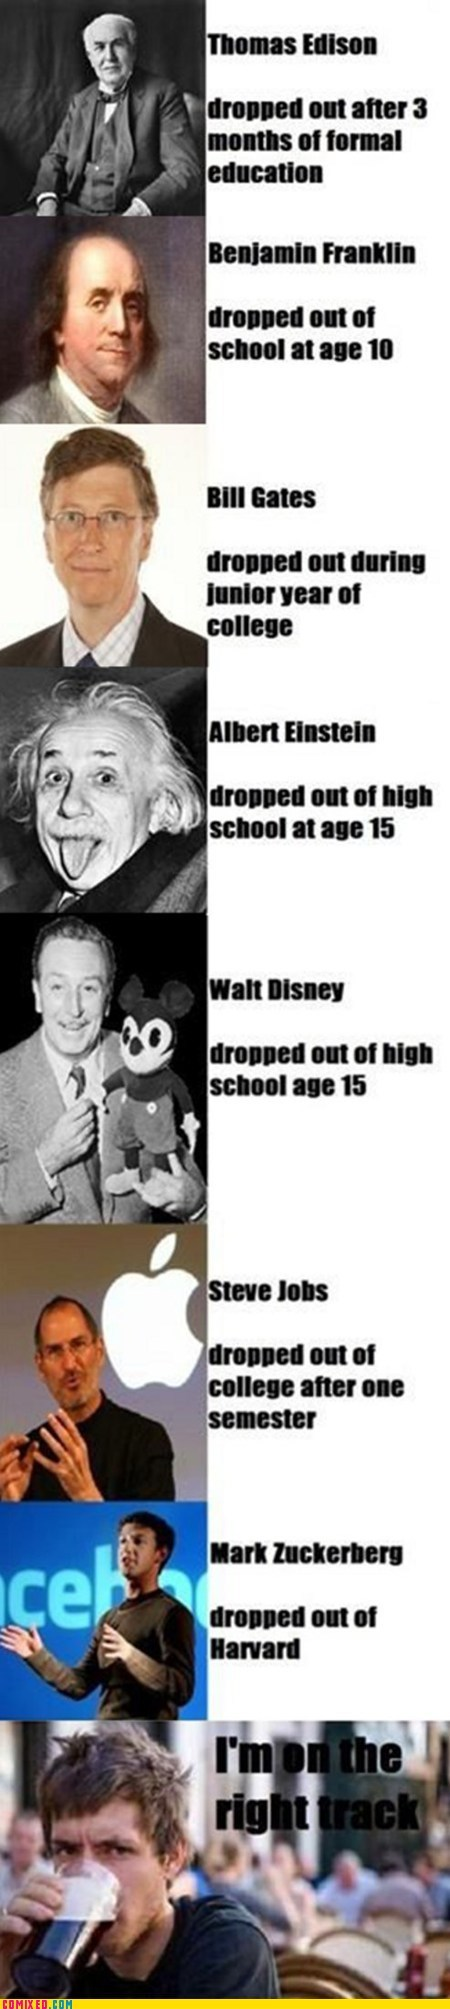 Bill Gates drop out einstein inventor steve jobs the internets walt disney - 6149723648